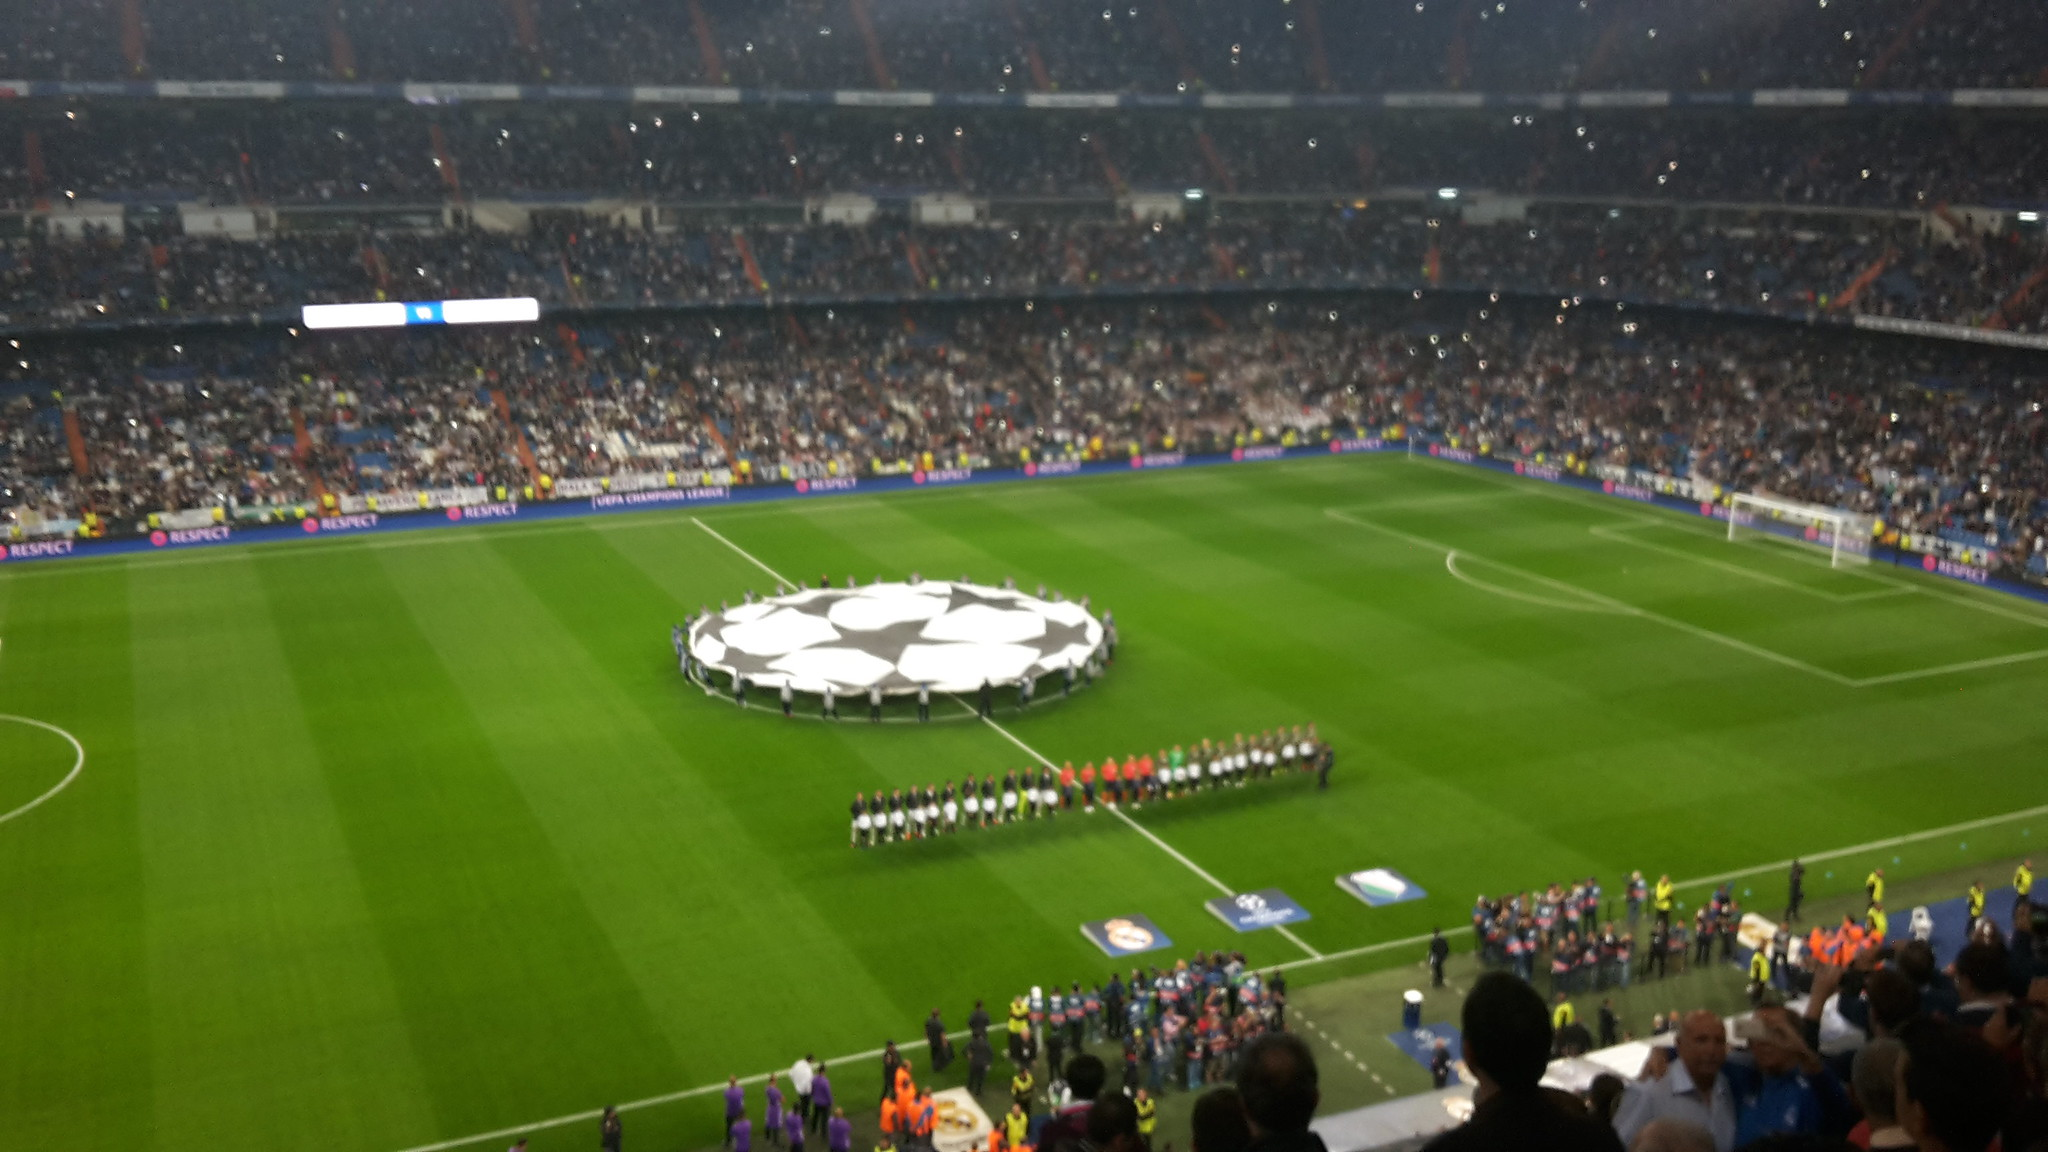 Real Madrid-Legia Warsaw